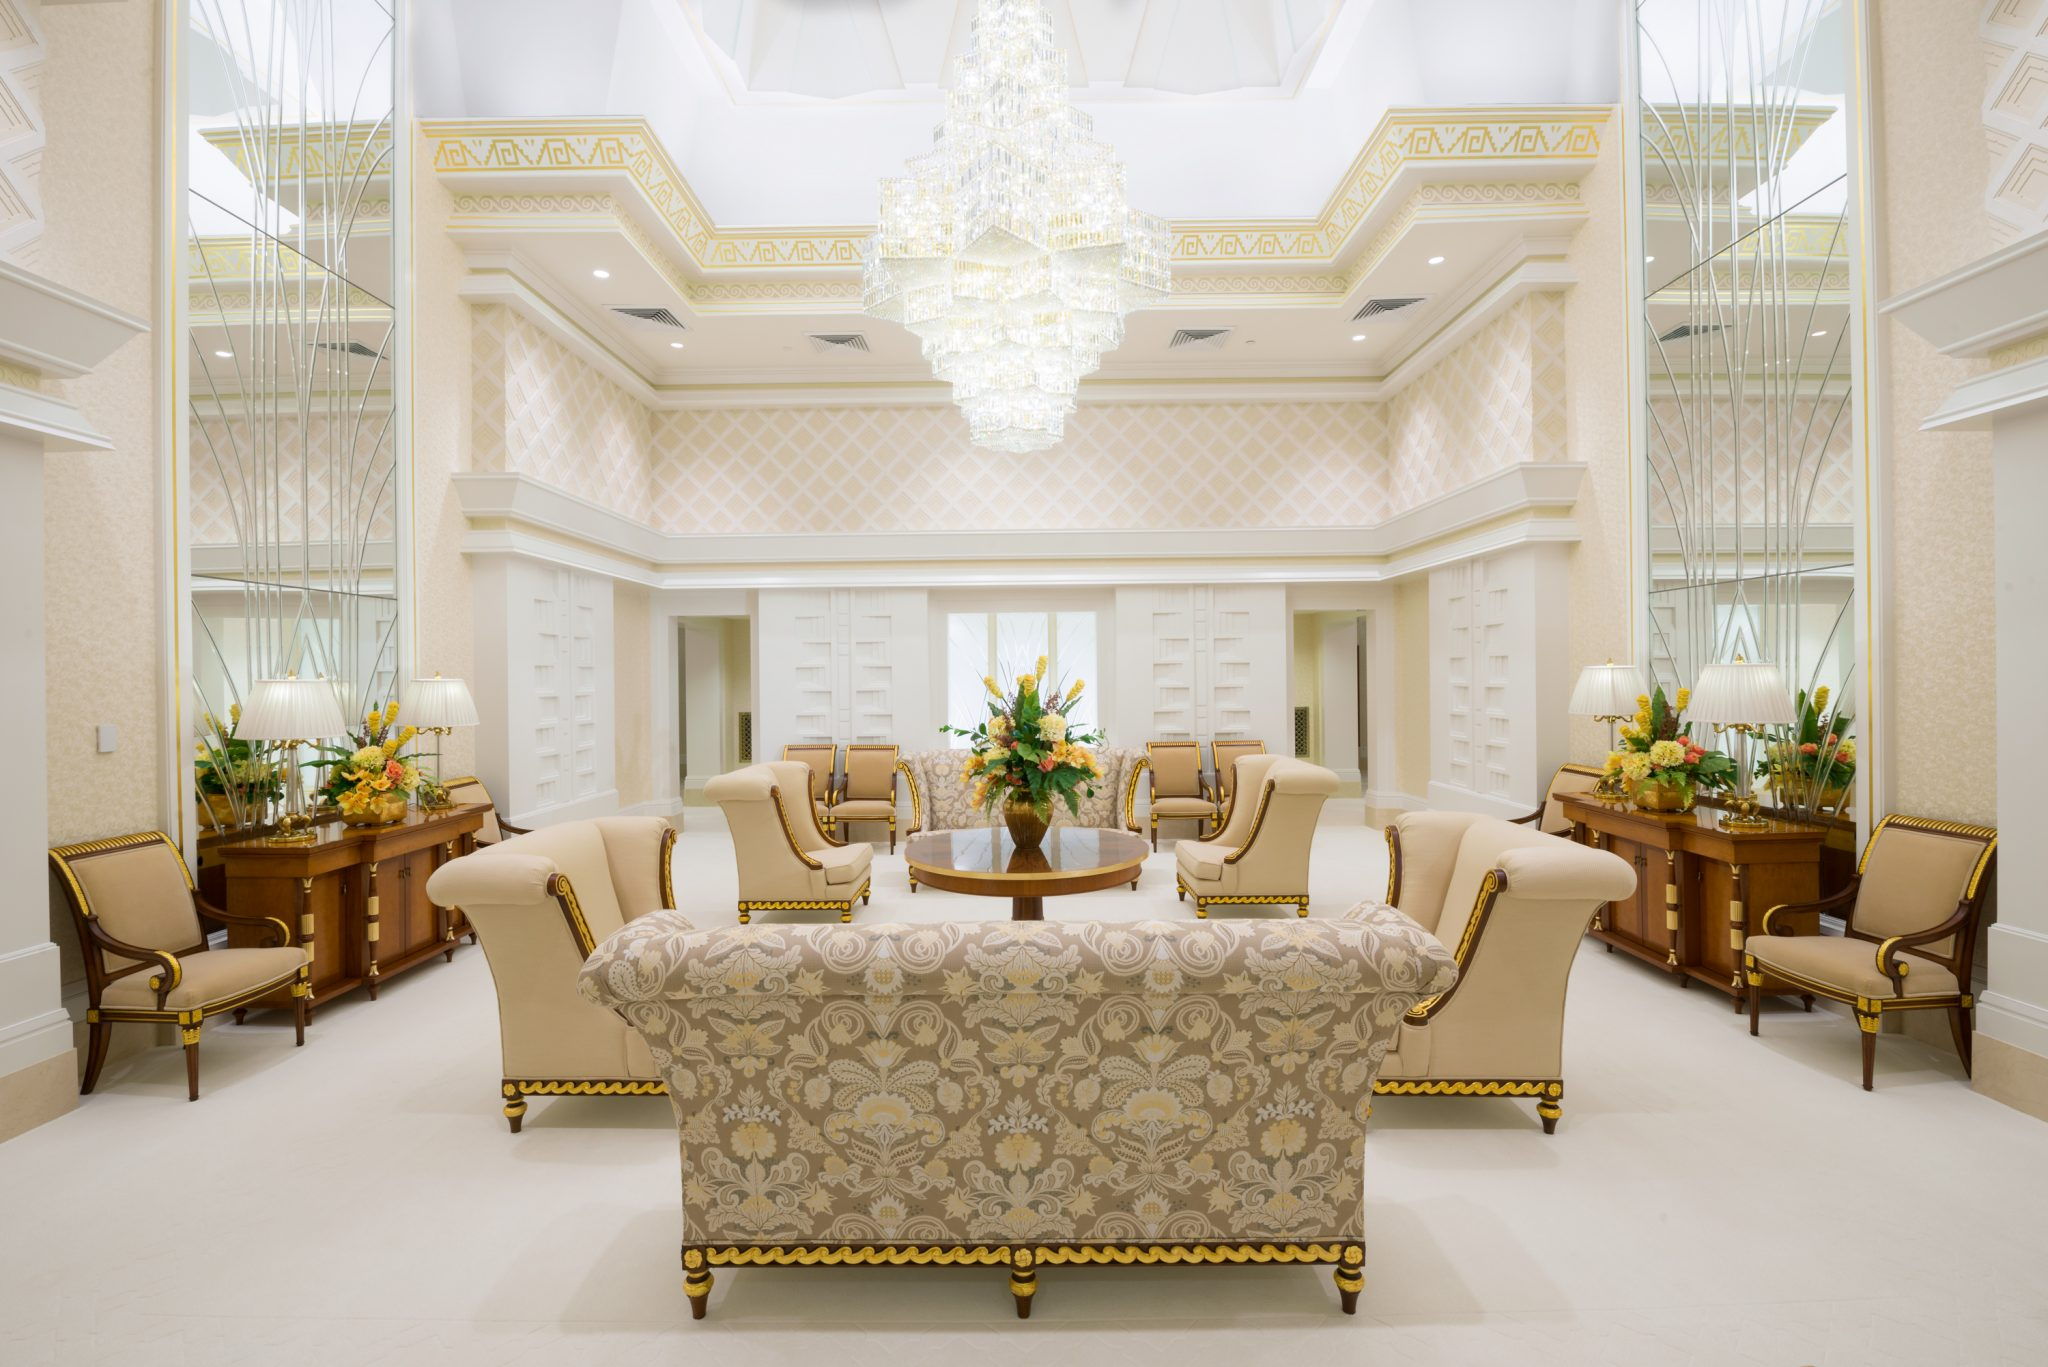 PHOTO GALLERY: Mexico City Temple Open to Public After Remodel | LDS ...